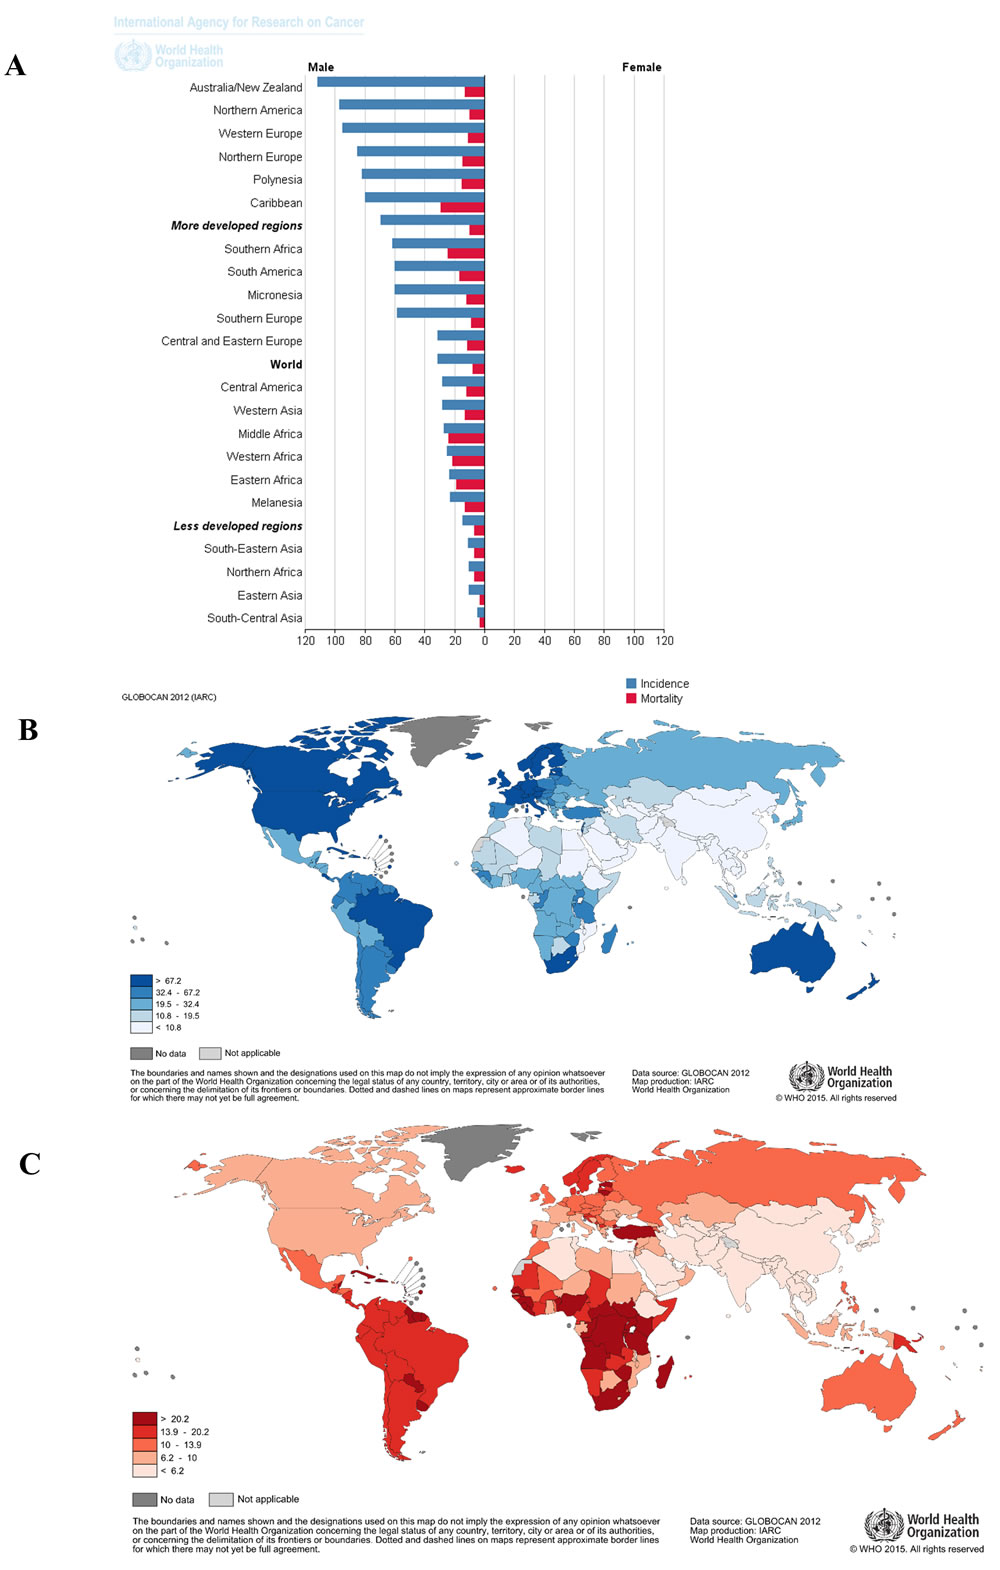 Global epidemiology of prostate cancer showing high burden of prostate cancer in Africa.